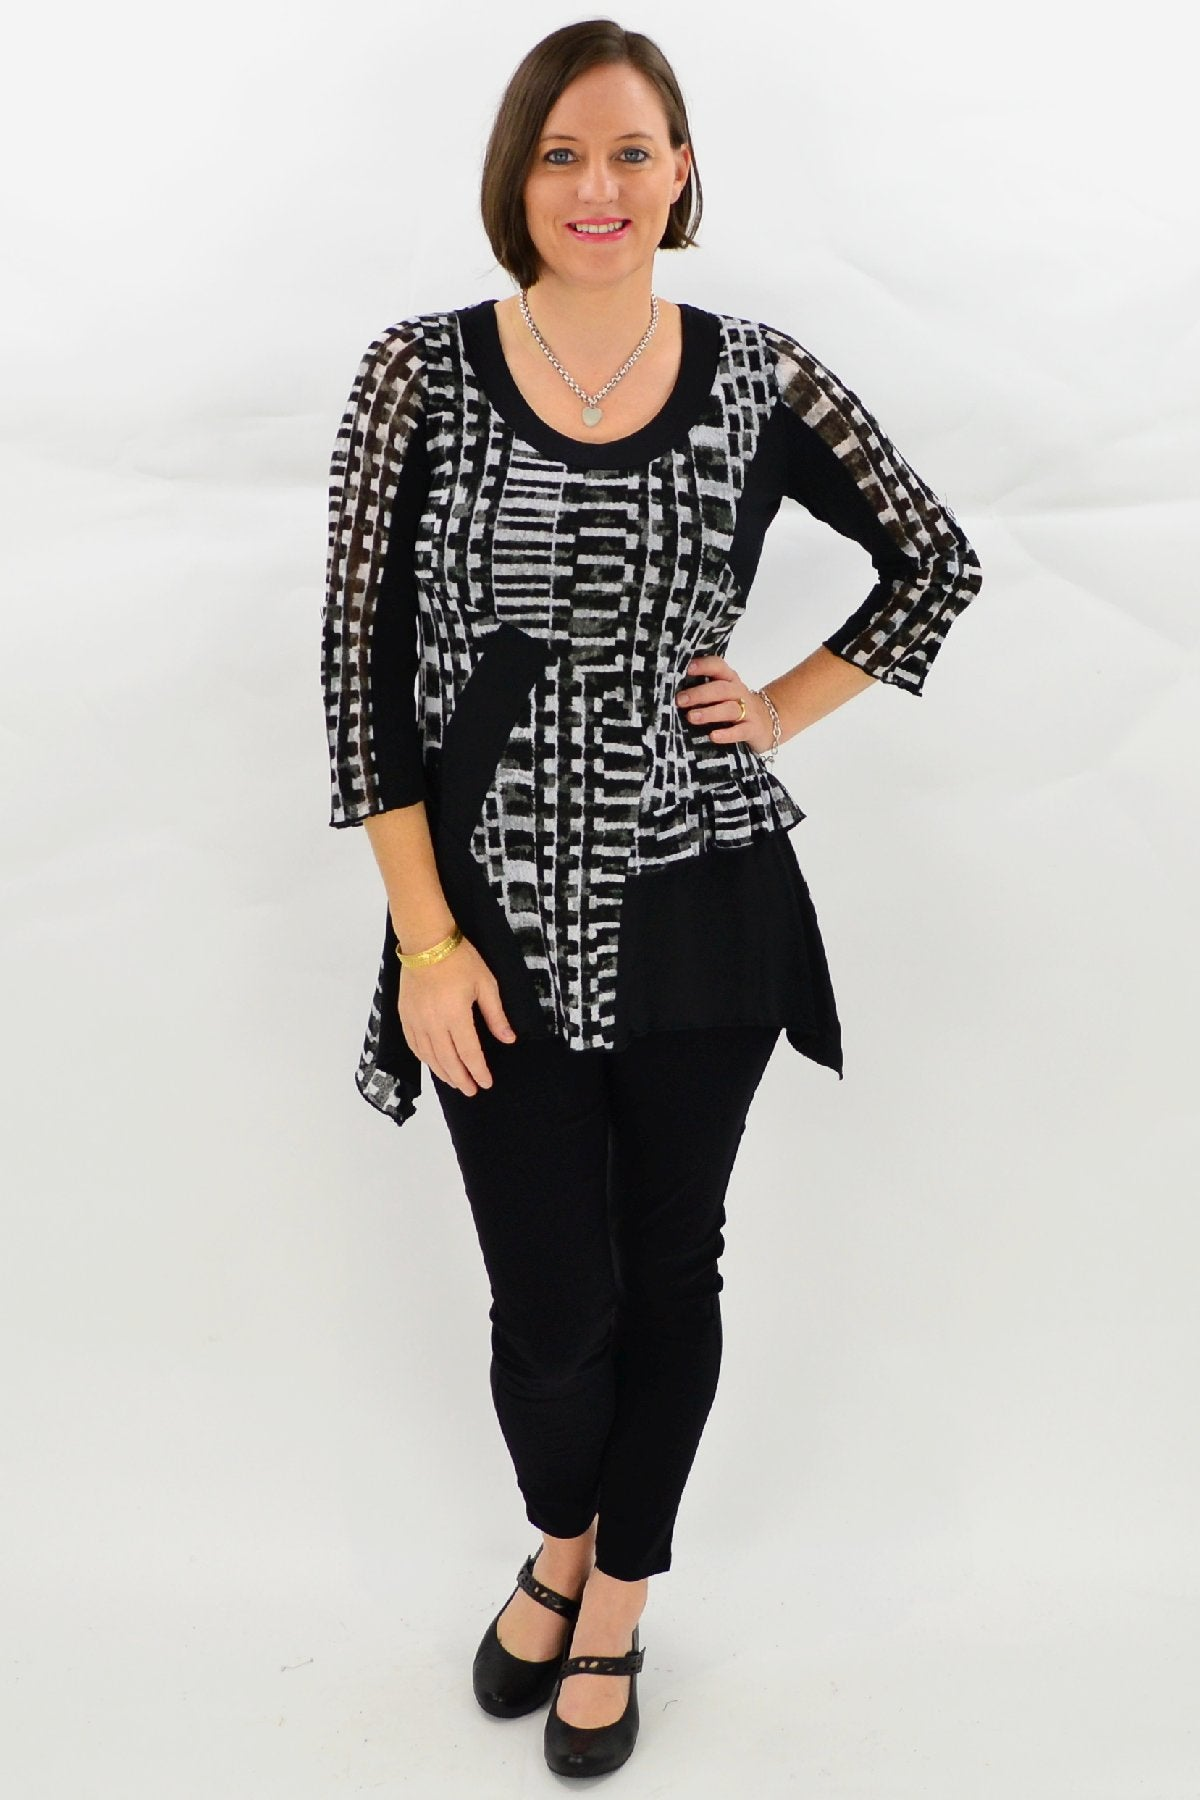 Hattie Tunic Top - at I Love Tunics @ www.ilovetunics.com = Number One! Tunics Destination